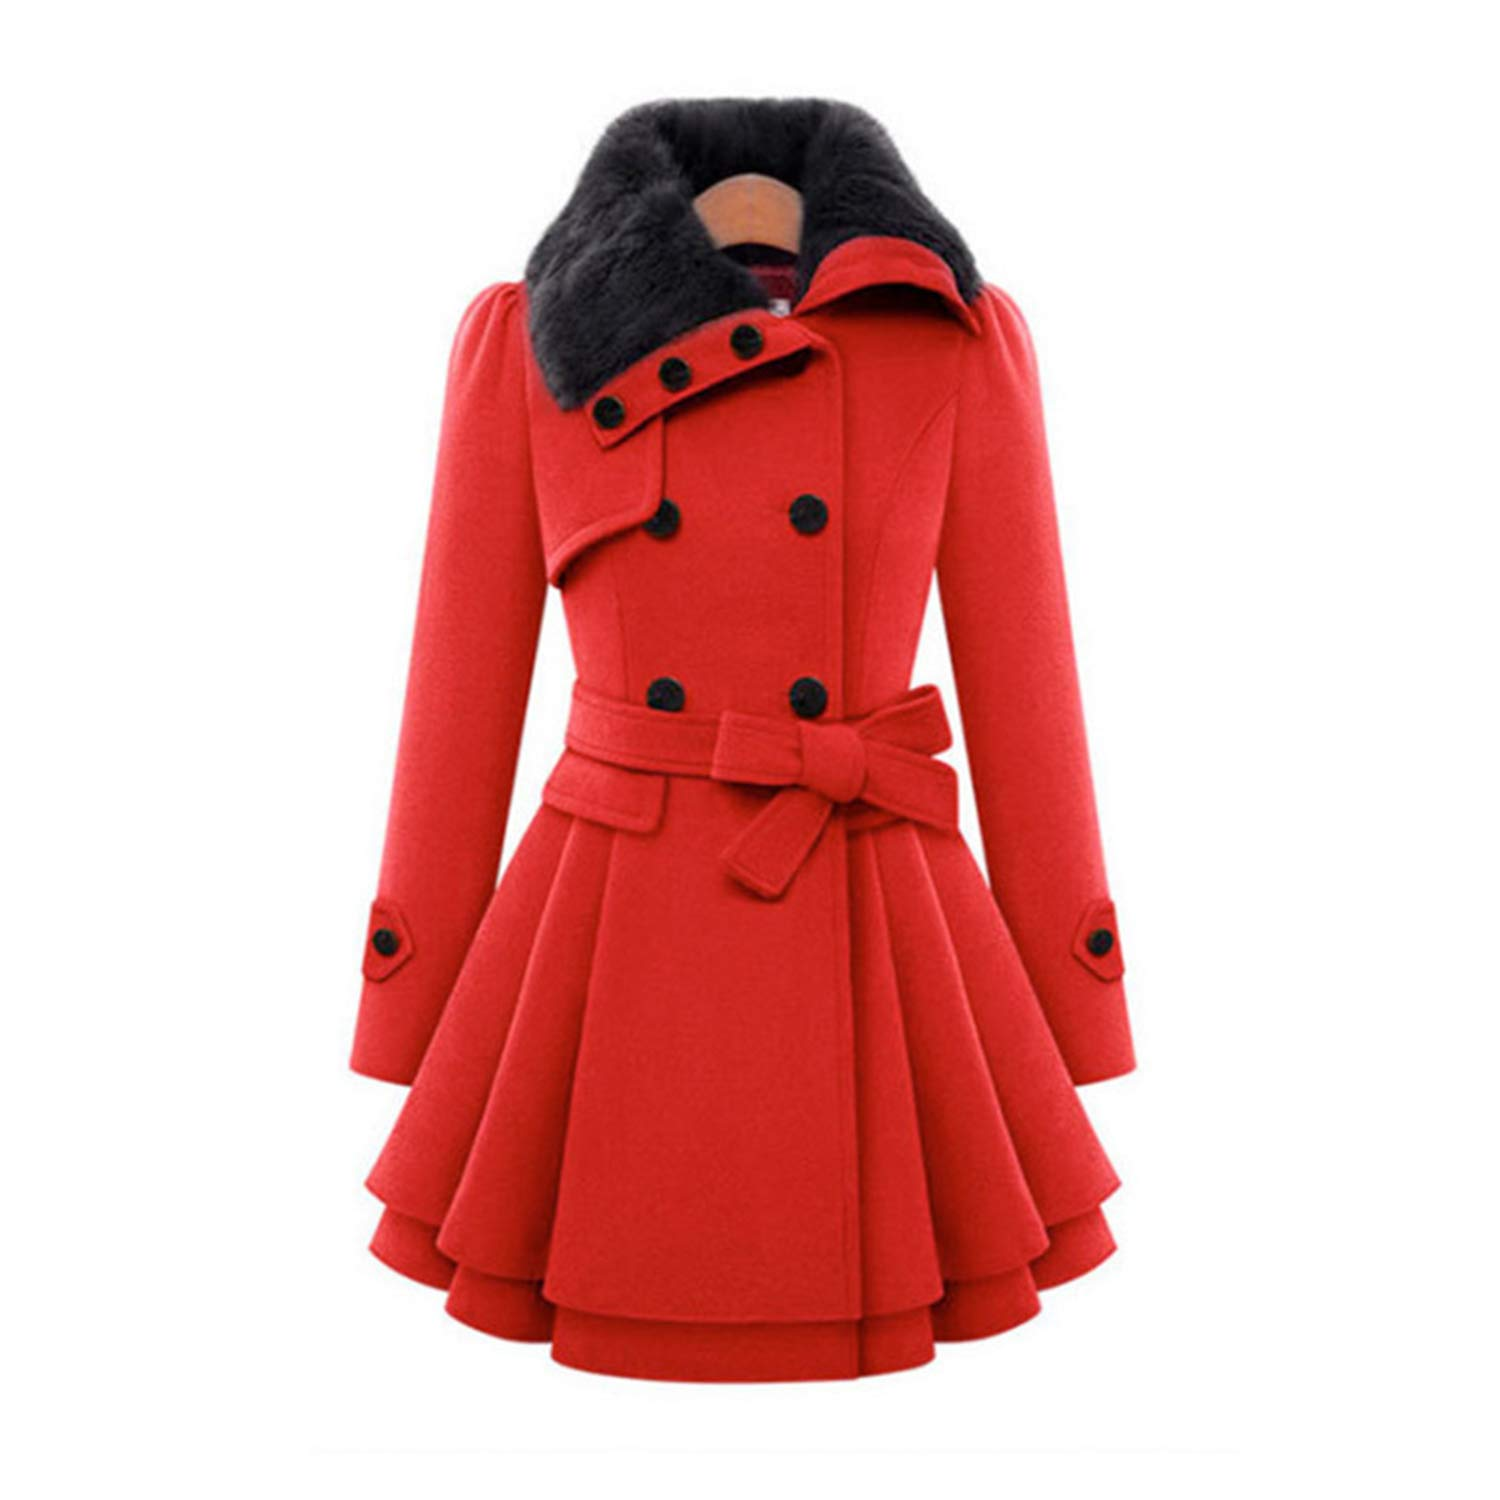 Avory Wool & Blends Coats Female Jacket Winter Woman Coat Warm Windbreaker Plus Size Abrigos Mujer Invierno New at Amazon Womens Clothing store: